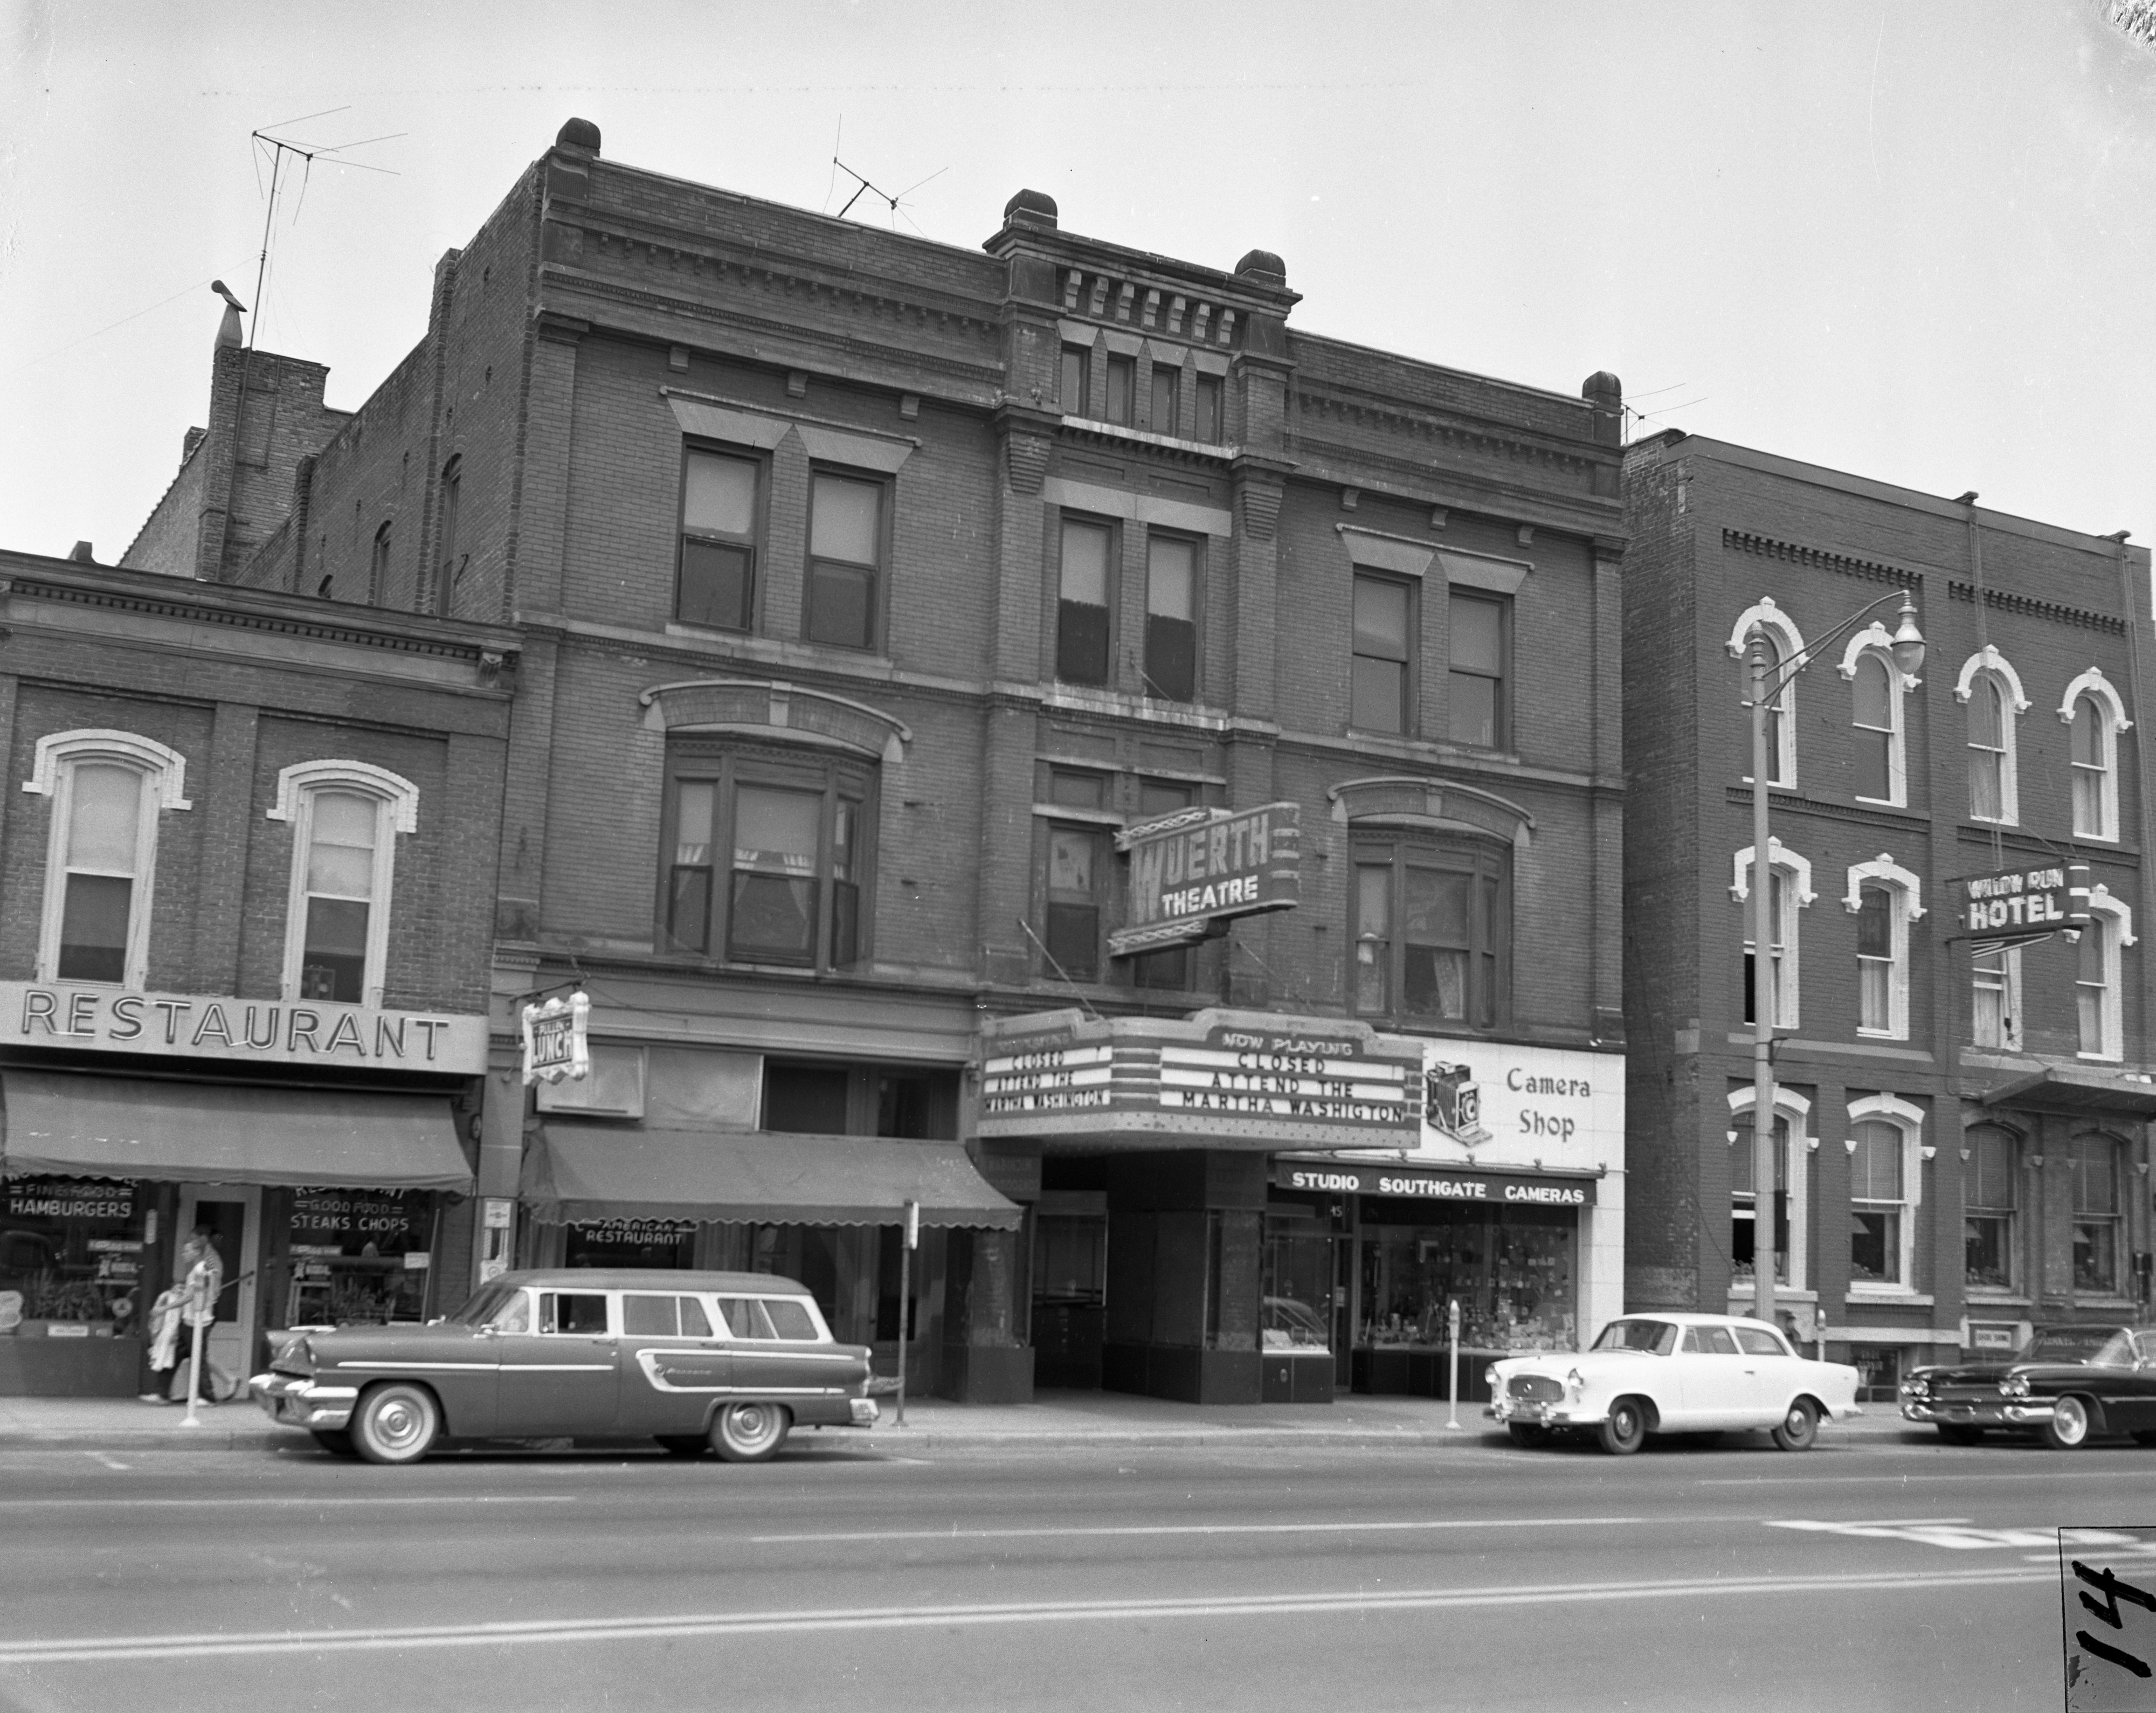 Wuerth Theatre in Ypsilanti, July 1959 image